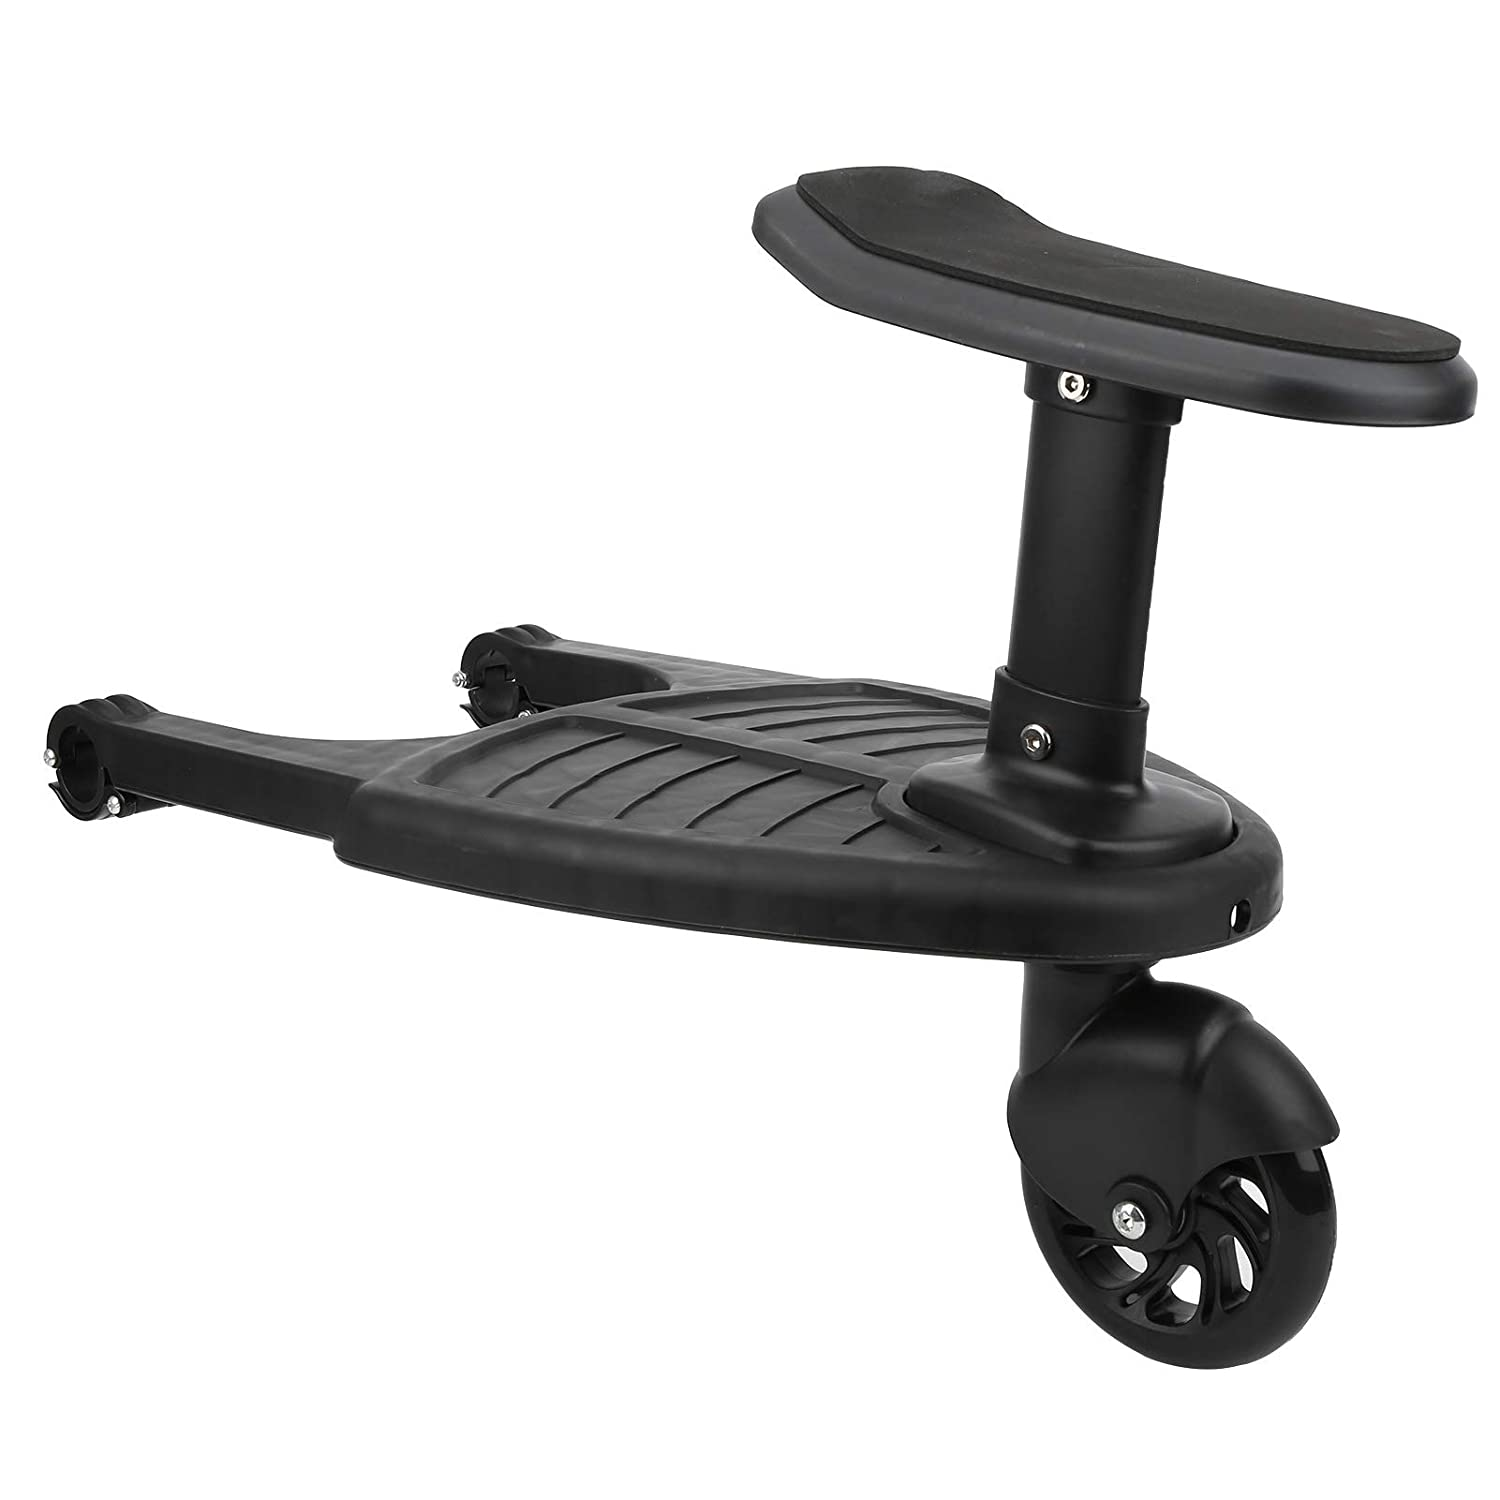 Stroller Standing Board Black Accessory Baby Seat Cash special price with 5 ☆ very popular